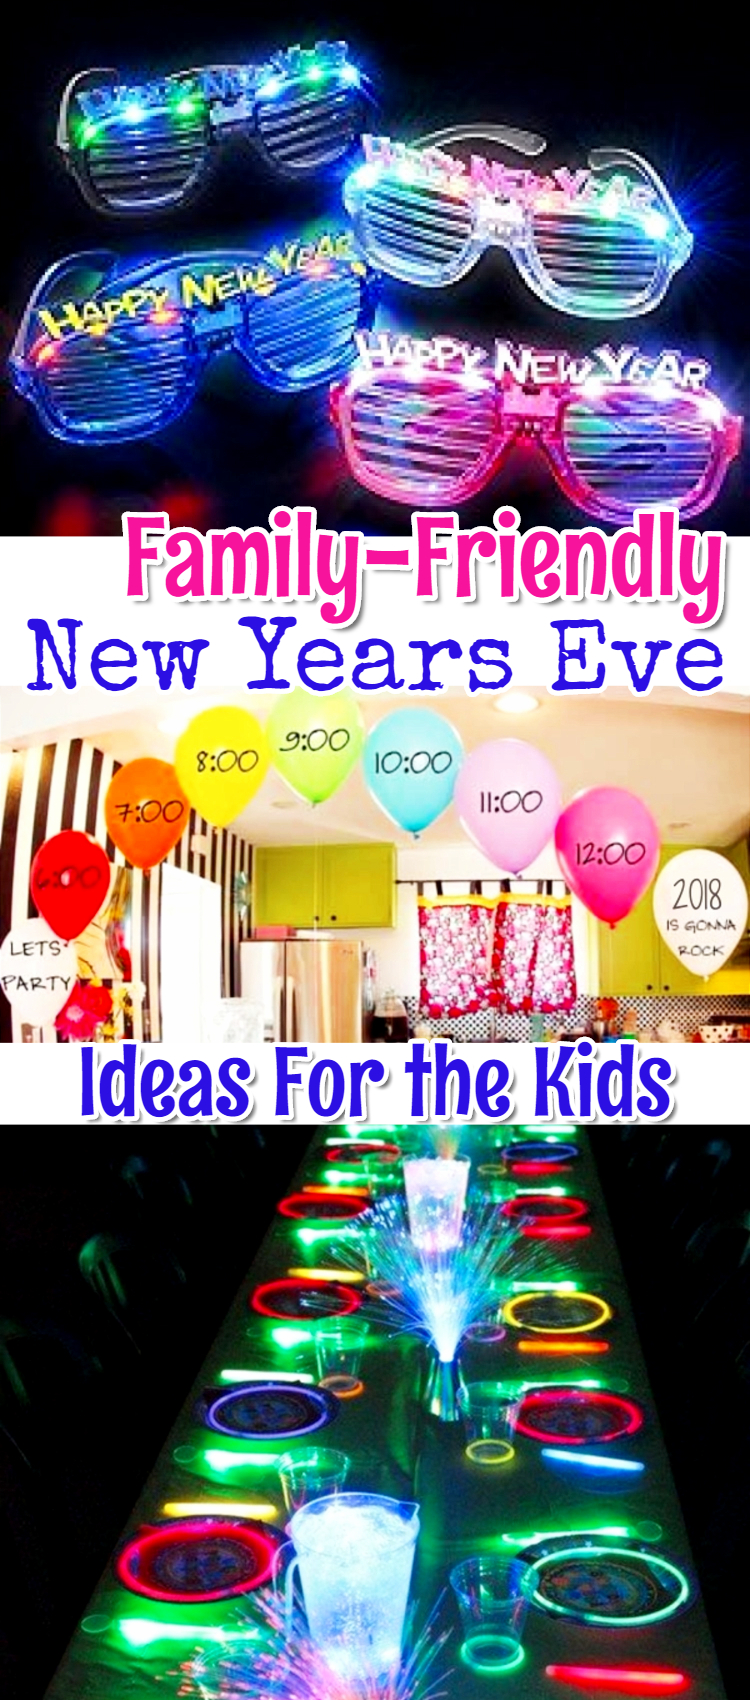 Ideas for Kids on New Years Eve